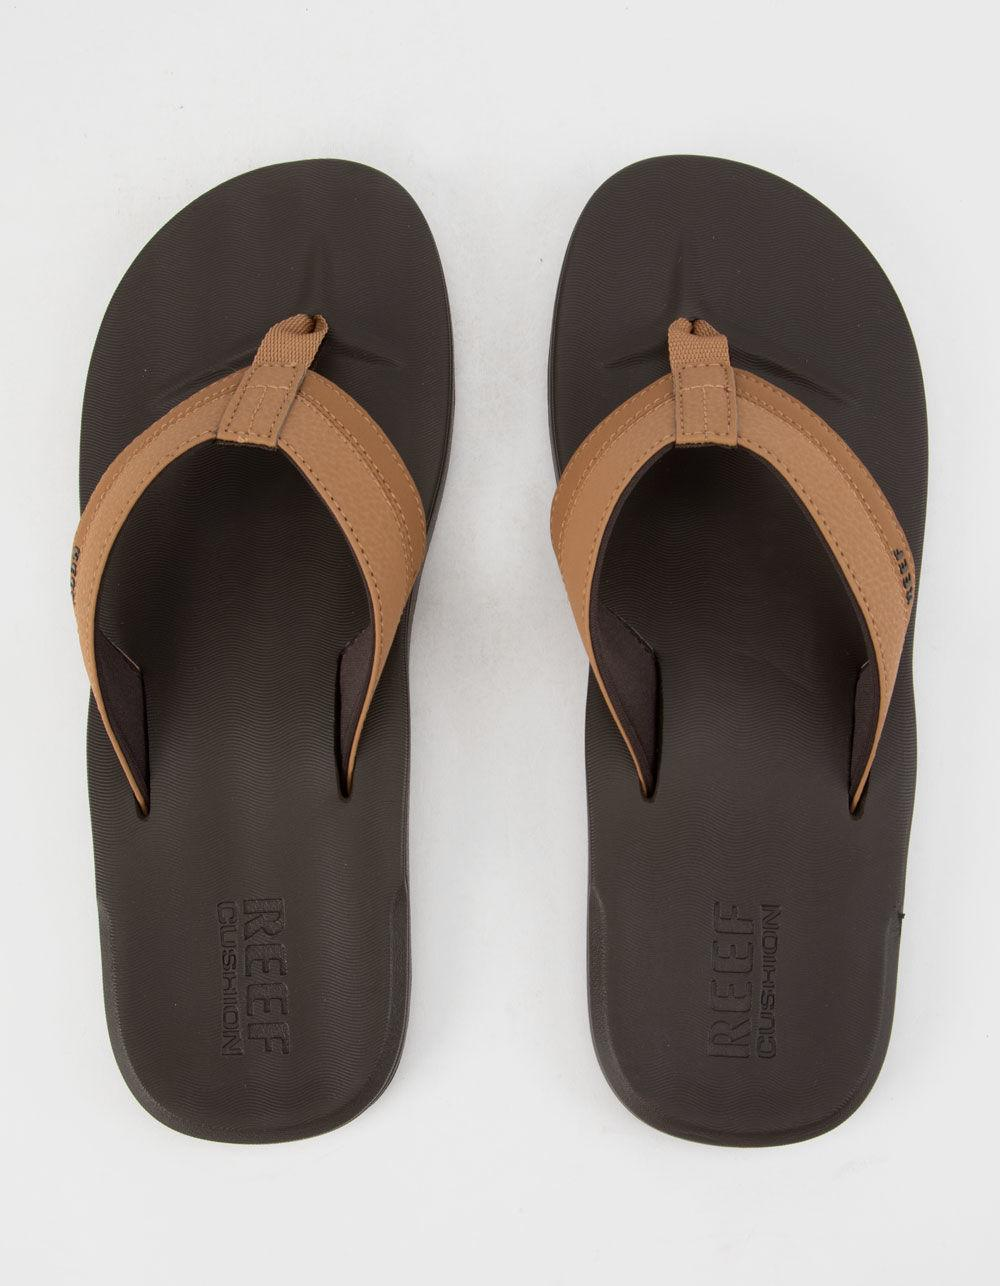 Lyst Reef Contoured Cushion Mens Sandals In Brown For Men